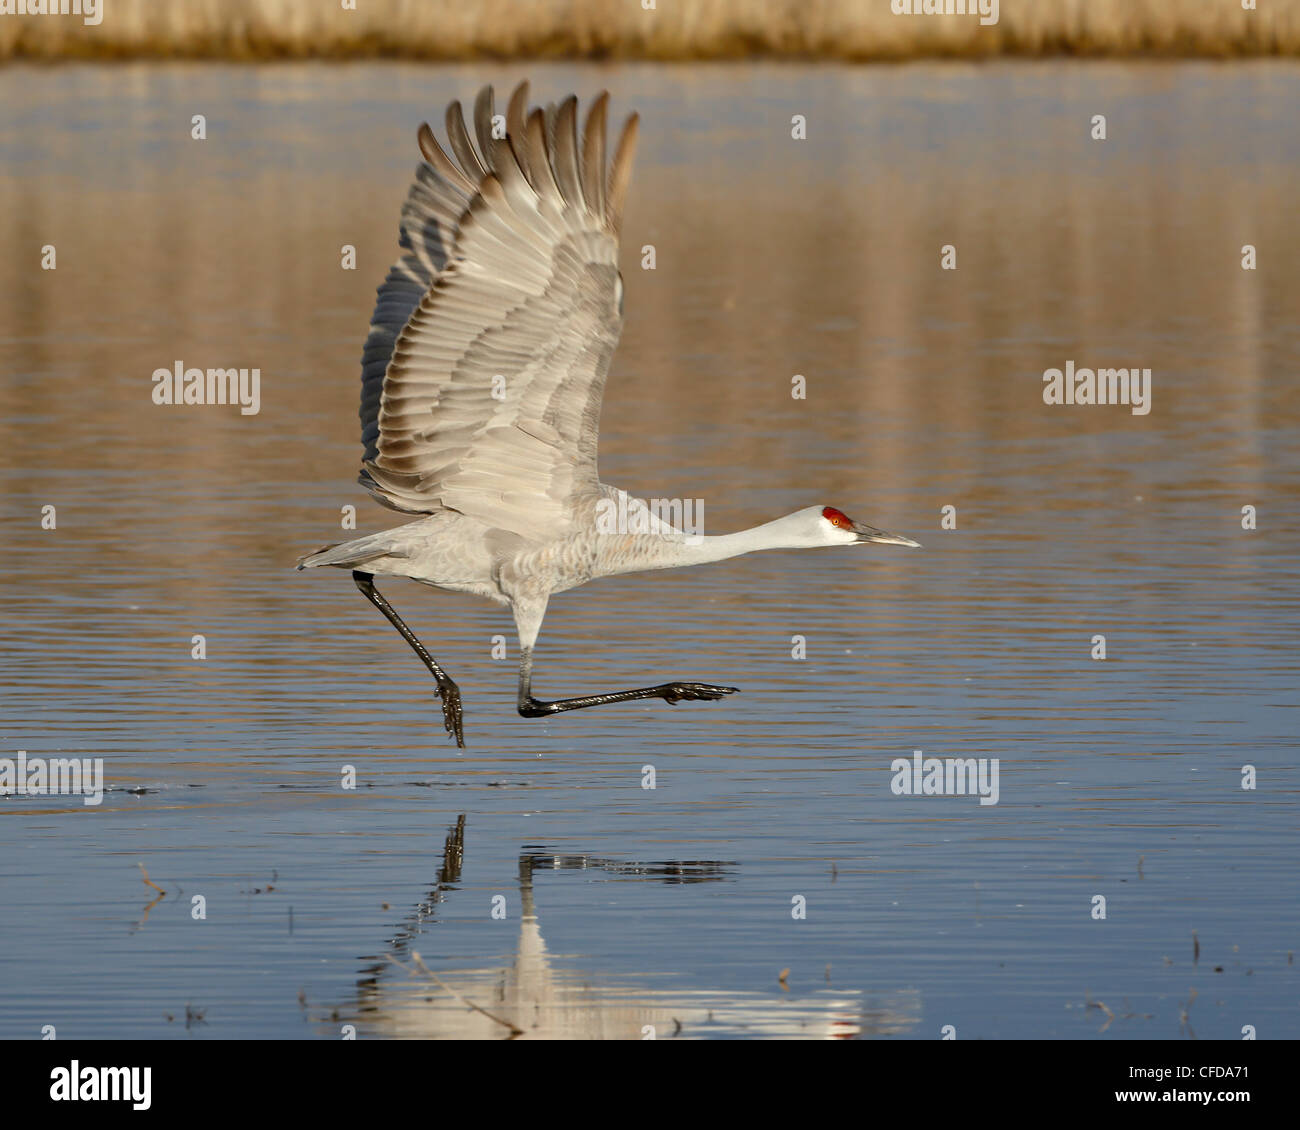 Sandhill crane (Grus canadensis) taking off from a pond, Bosque Del Apache National Wildlife Refuge, New Mexico, - Stock Image